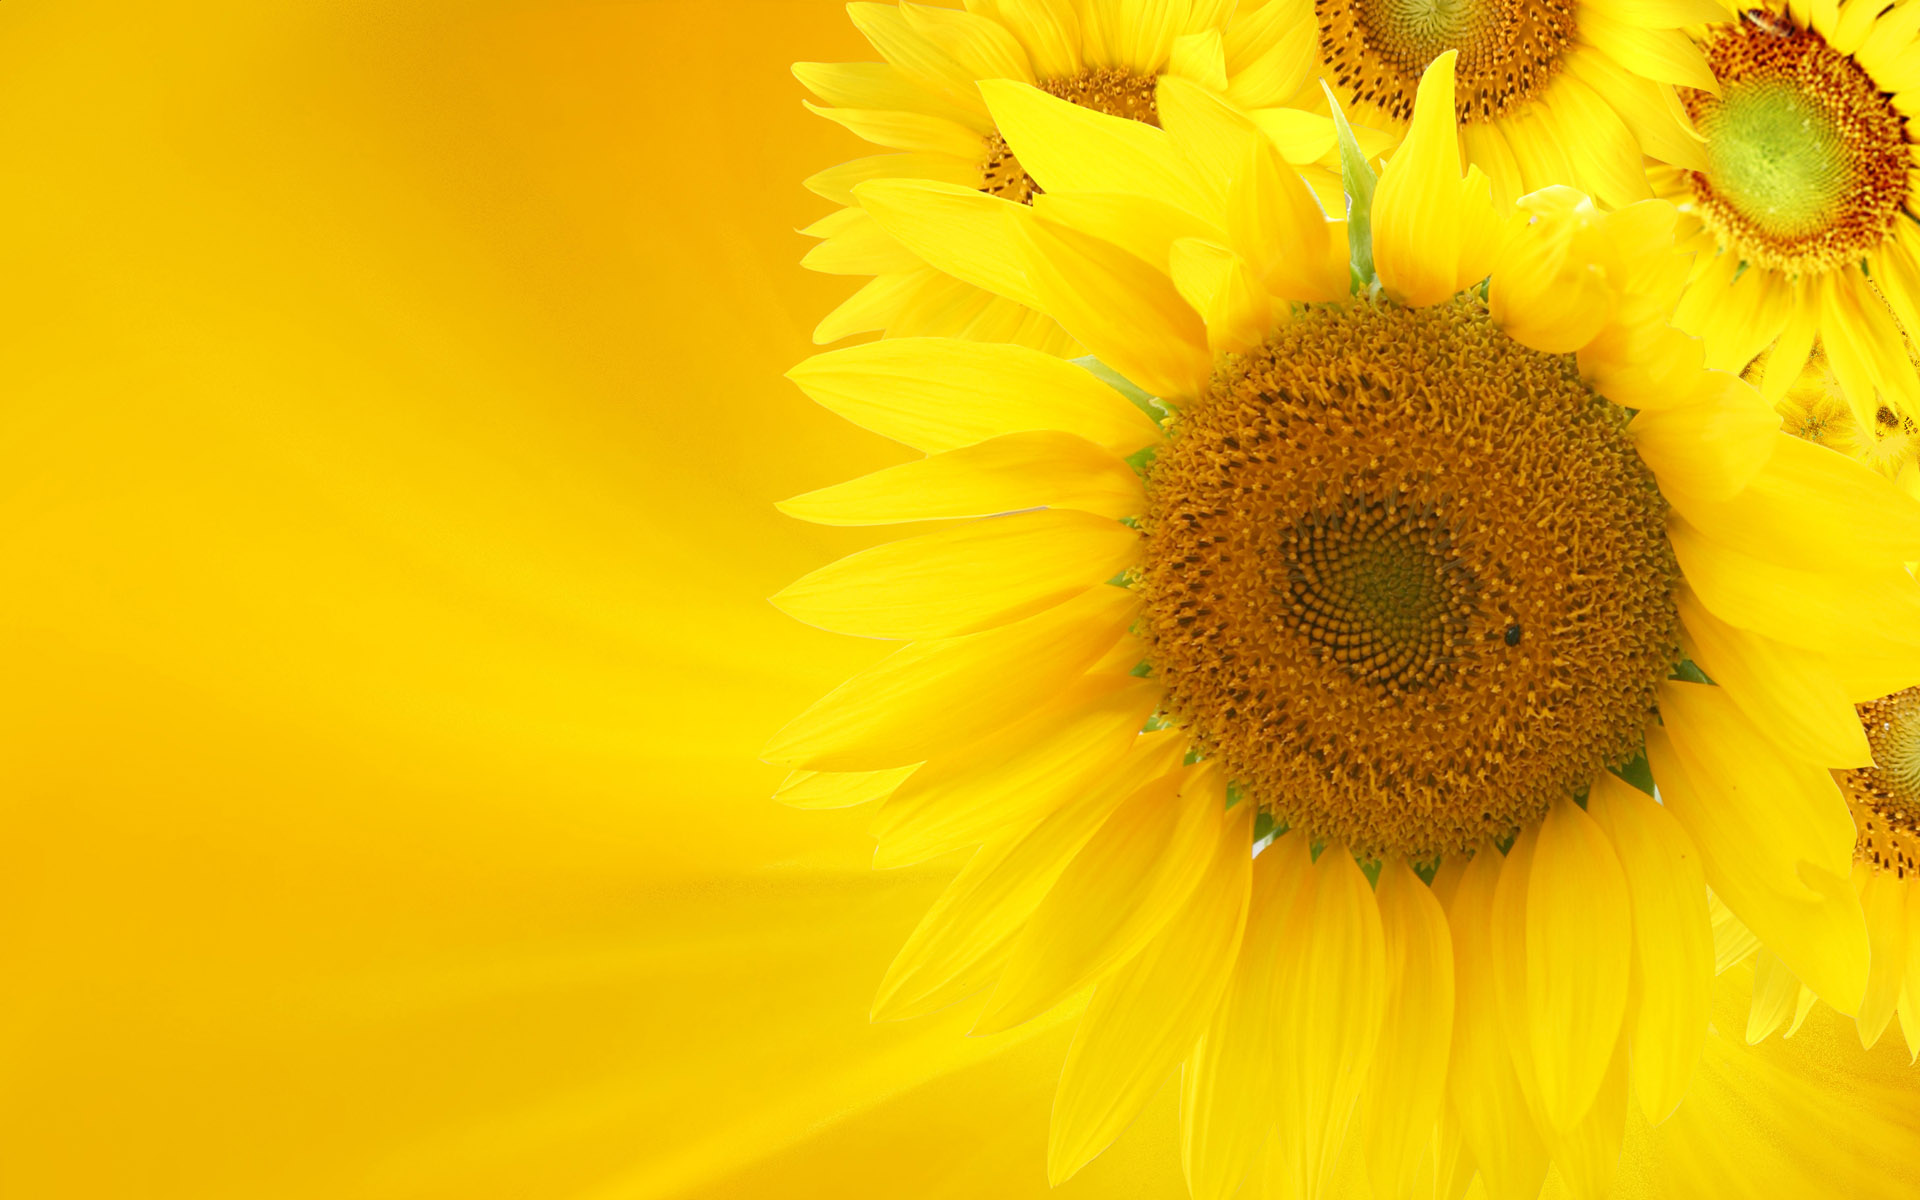 Yellow sunflower wallpaper